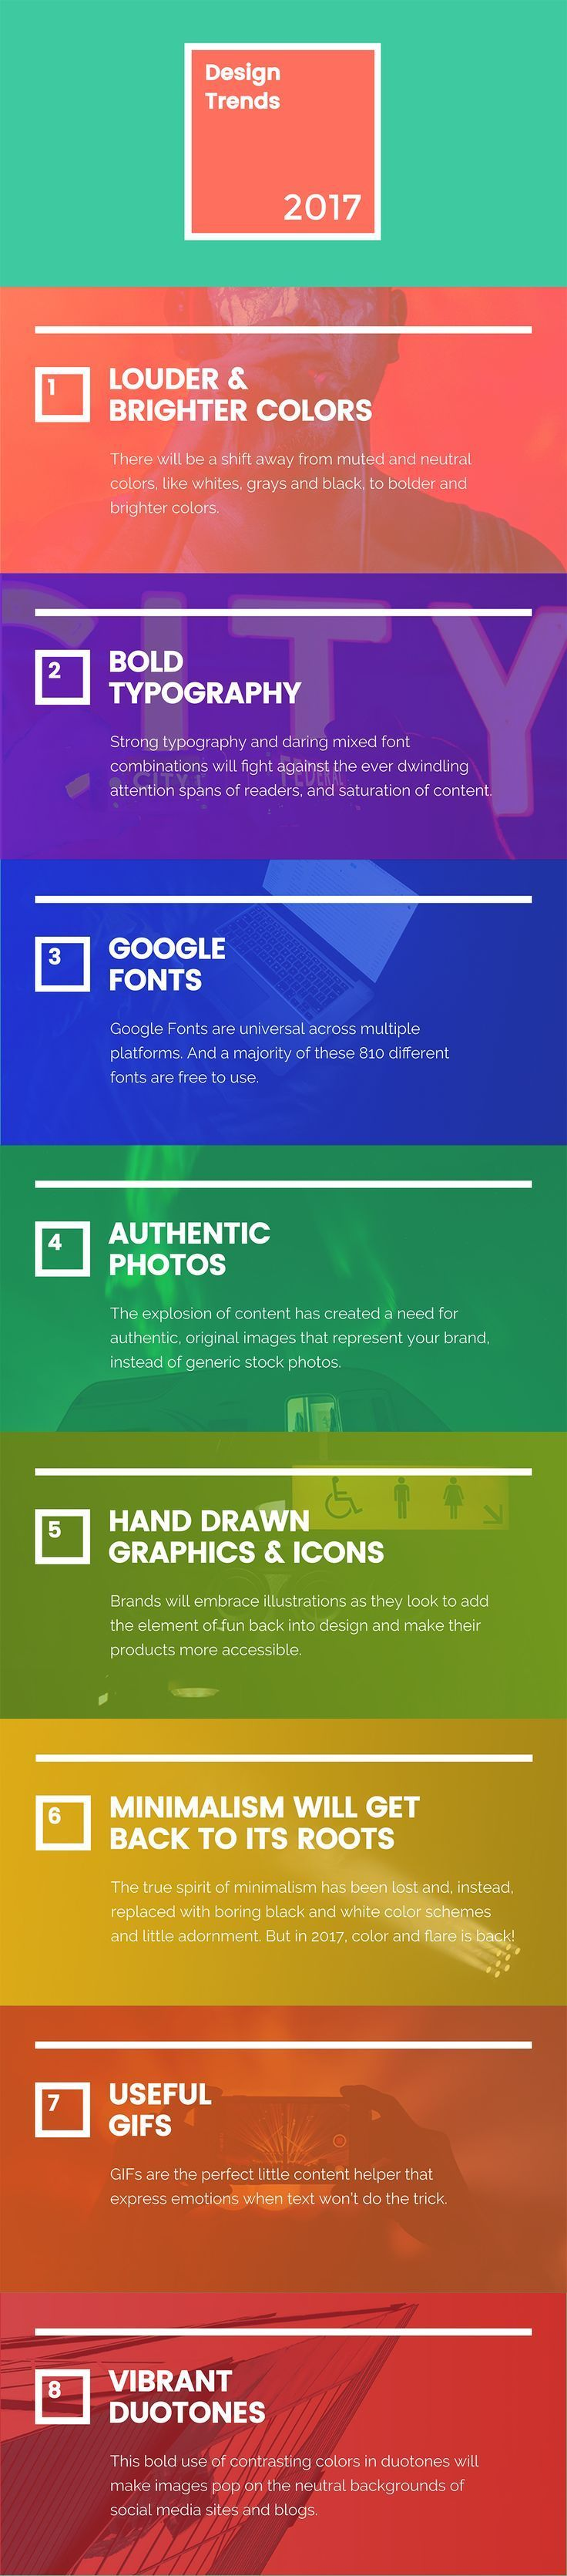 8 new graphic design trends that will take over 2017 - infographic